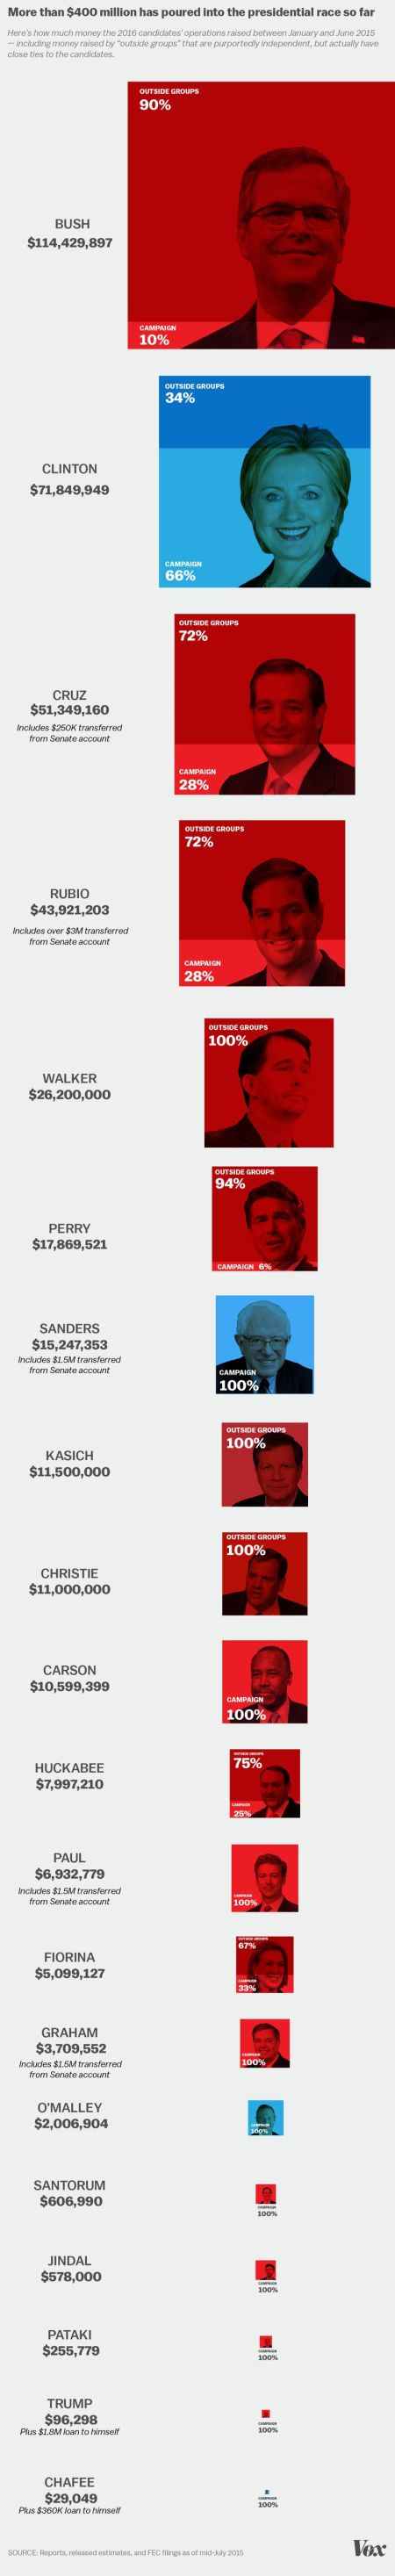 Campaign_finance_graphic.0